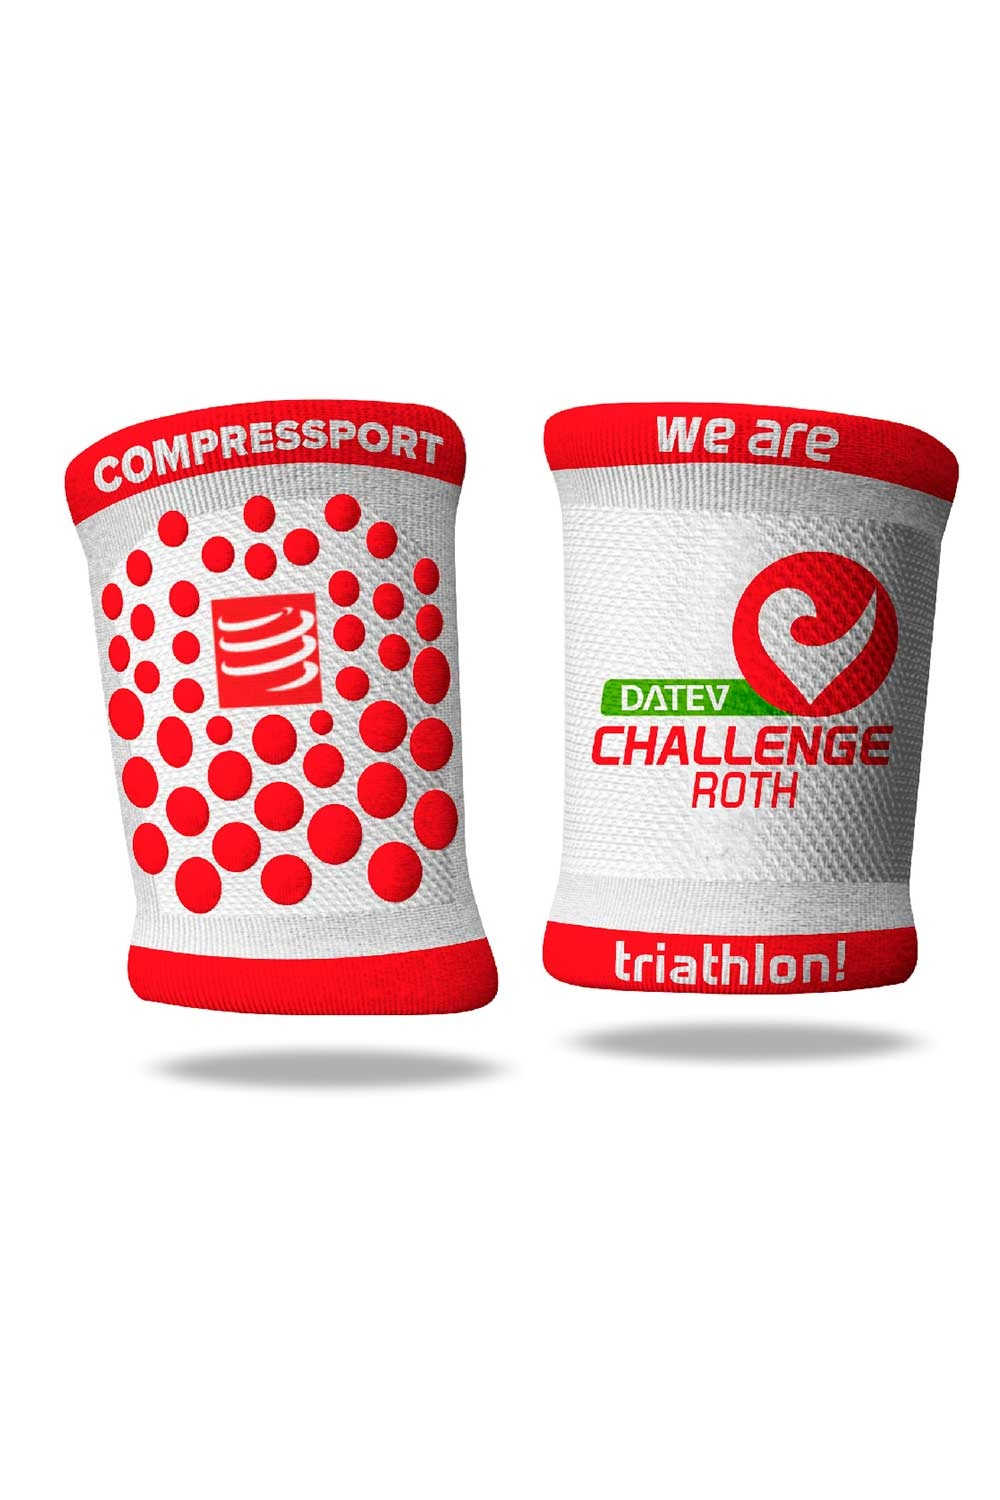 Compressport Sweatband 2021-1